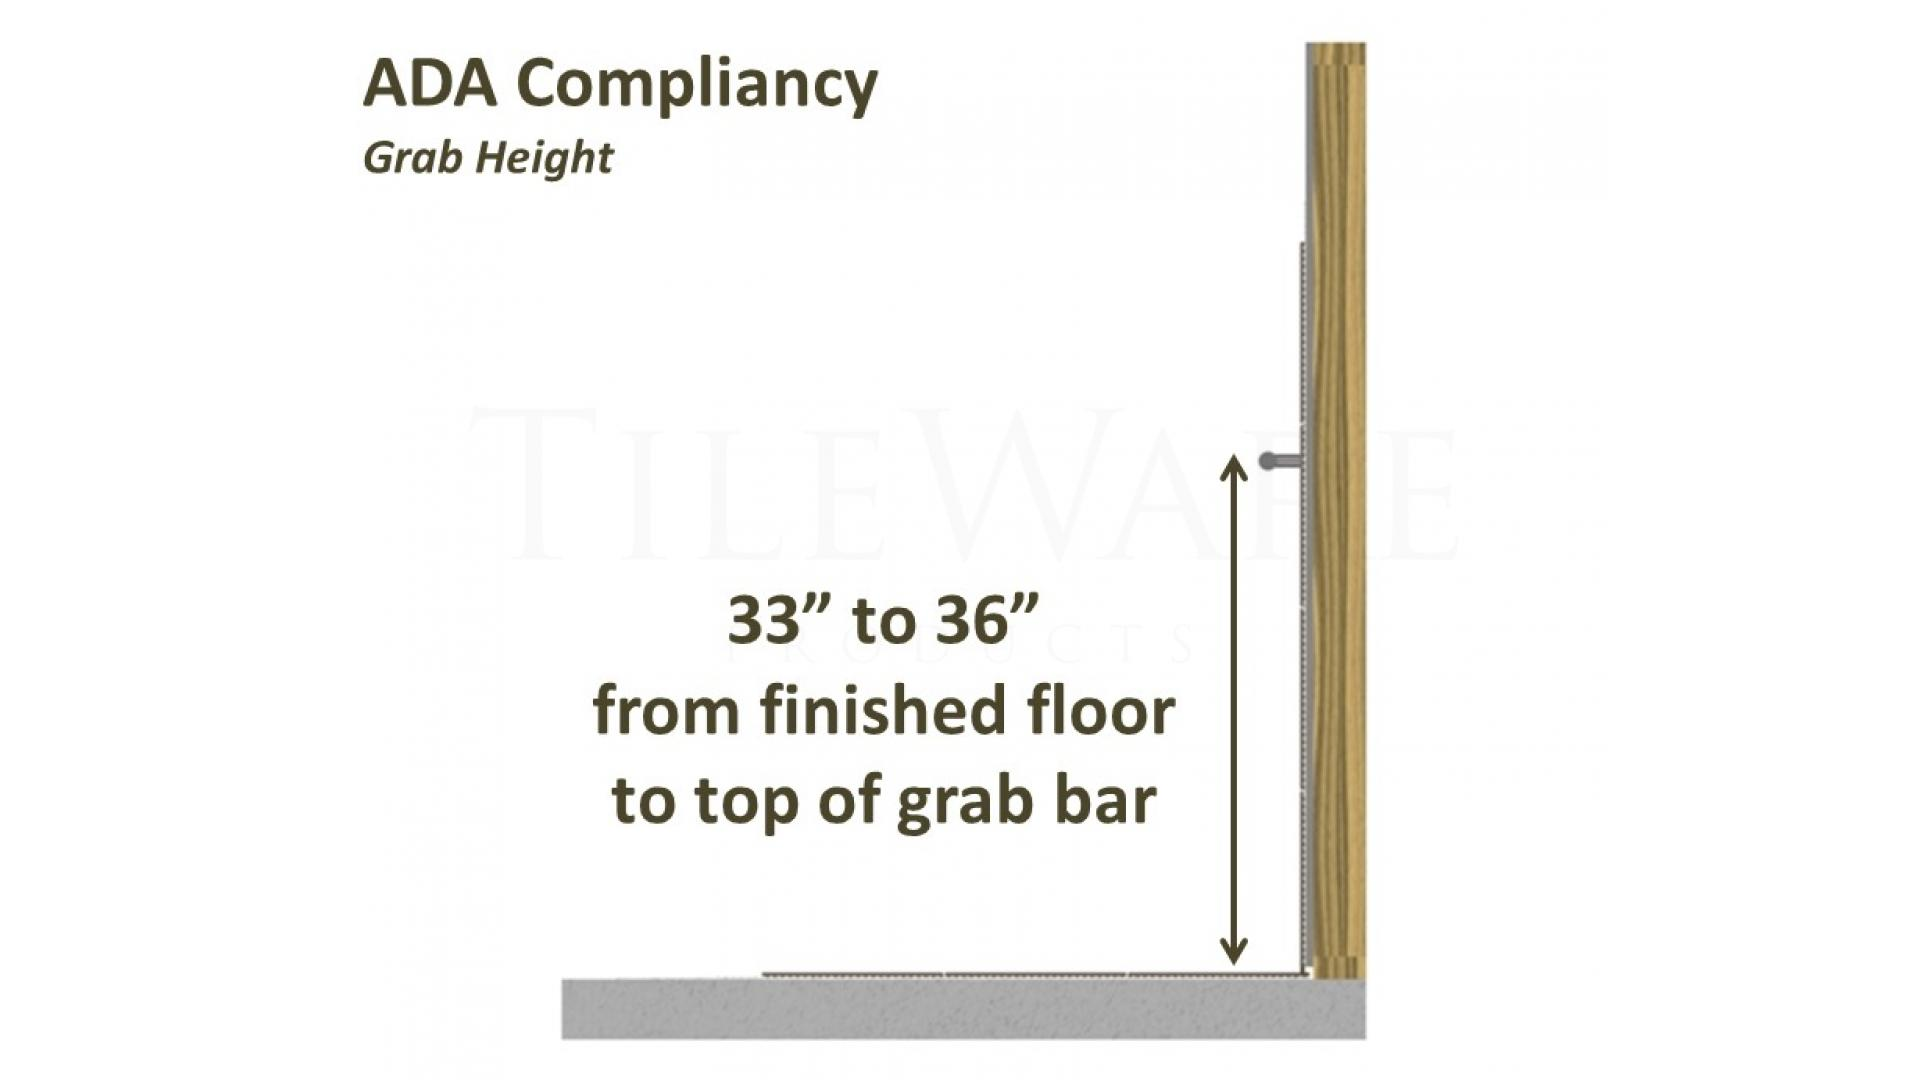 ADA - Grab Bar Standard Specification (Slideshow) | TileWare Products